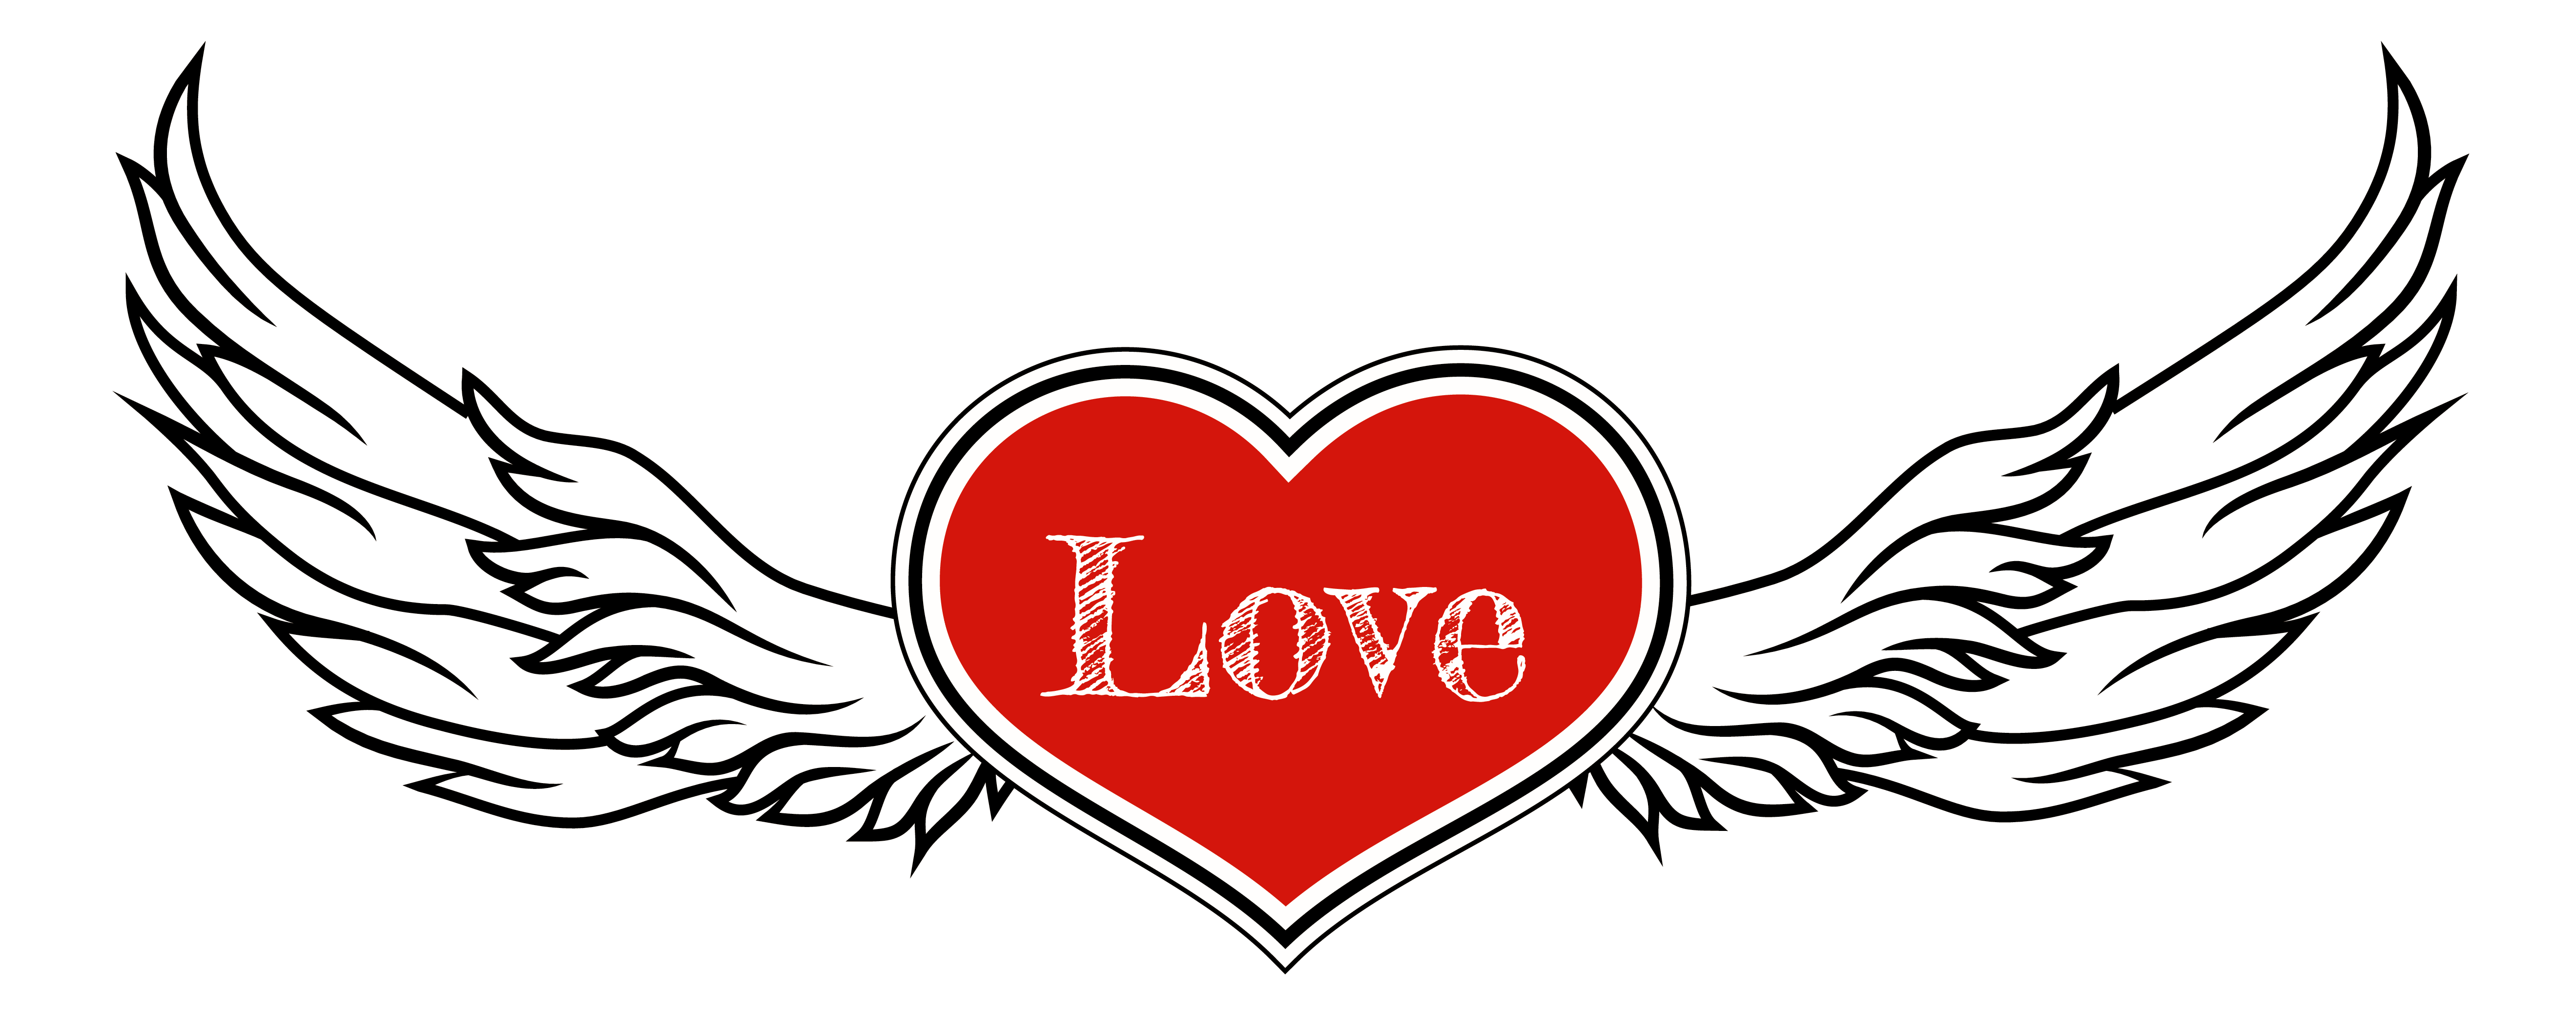 5277x2111 Heart With Wings Clipart